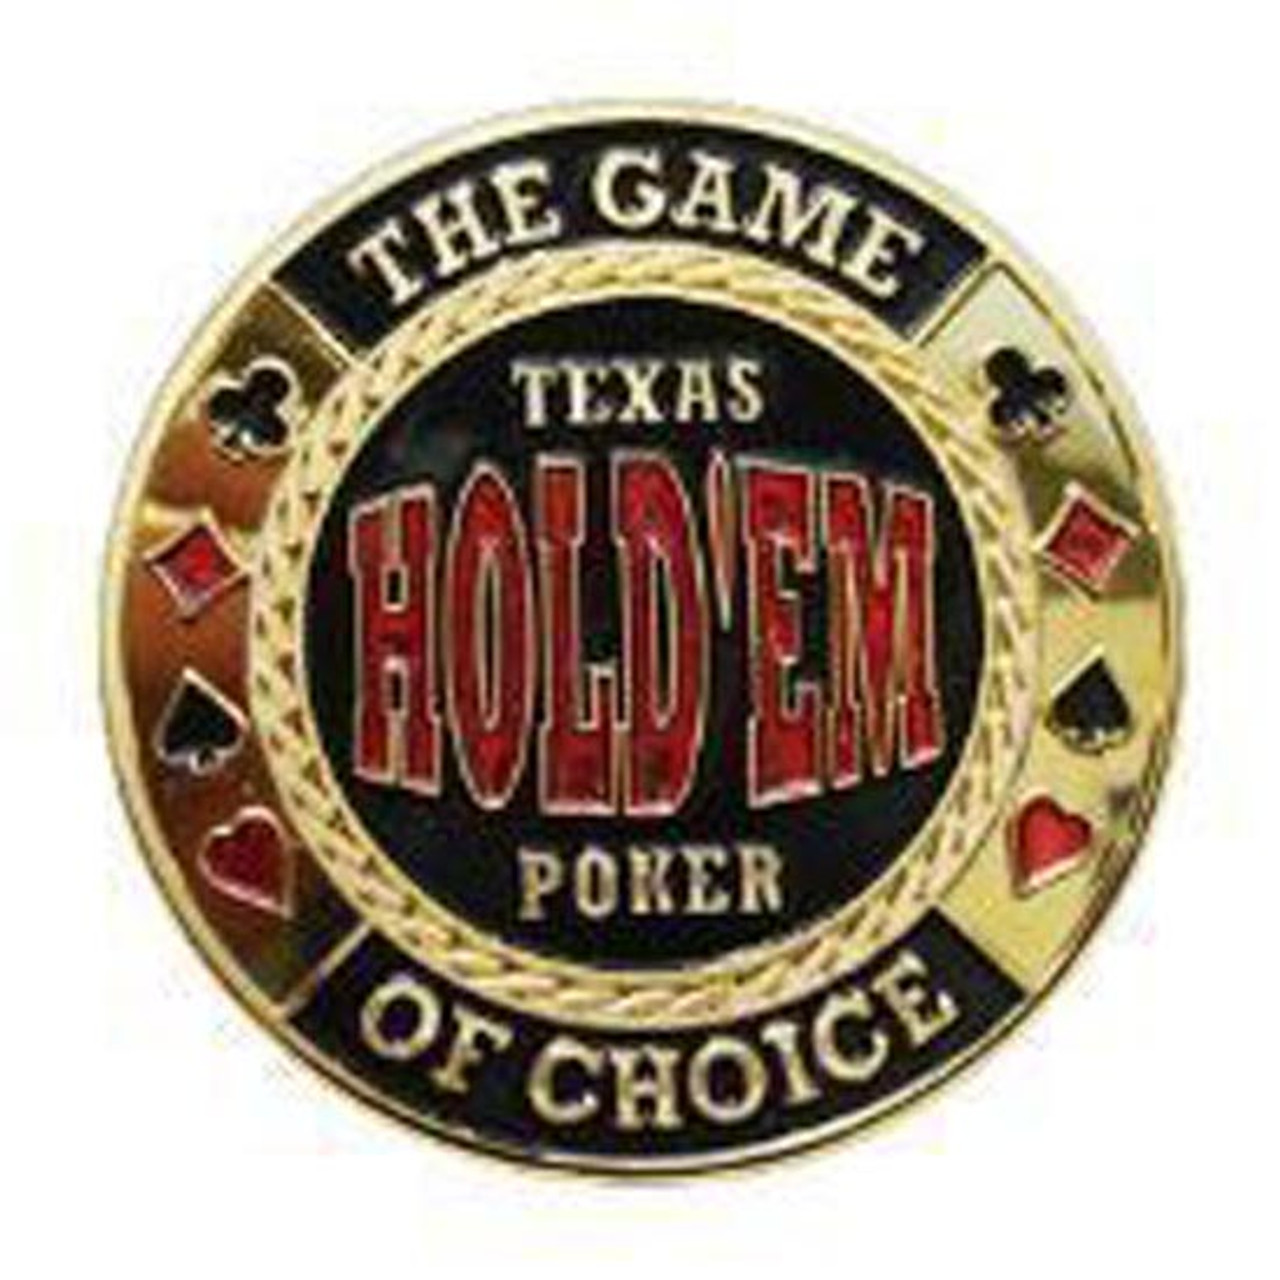 Poker Card Guard - TEXAS HOLD'EM POKER - THE GAME OF CHOICE